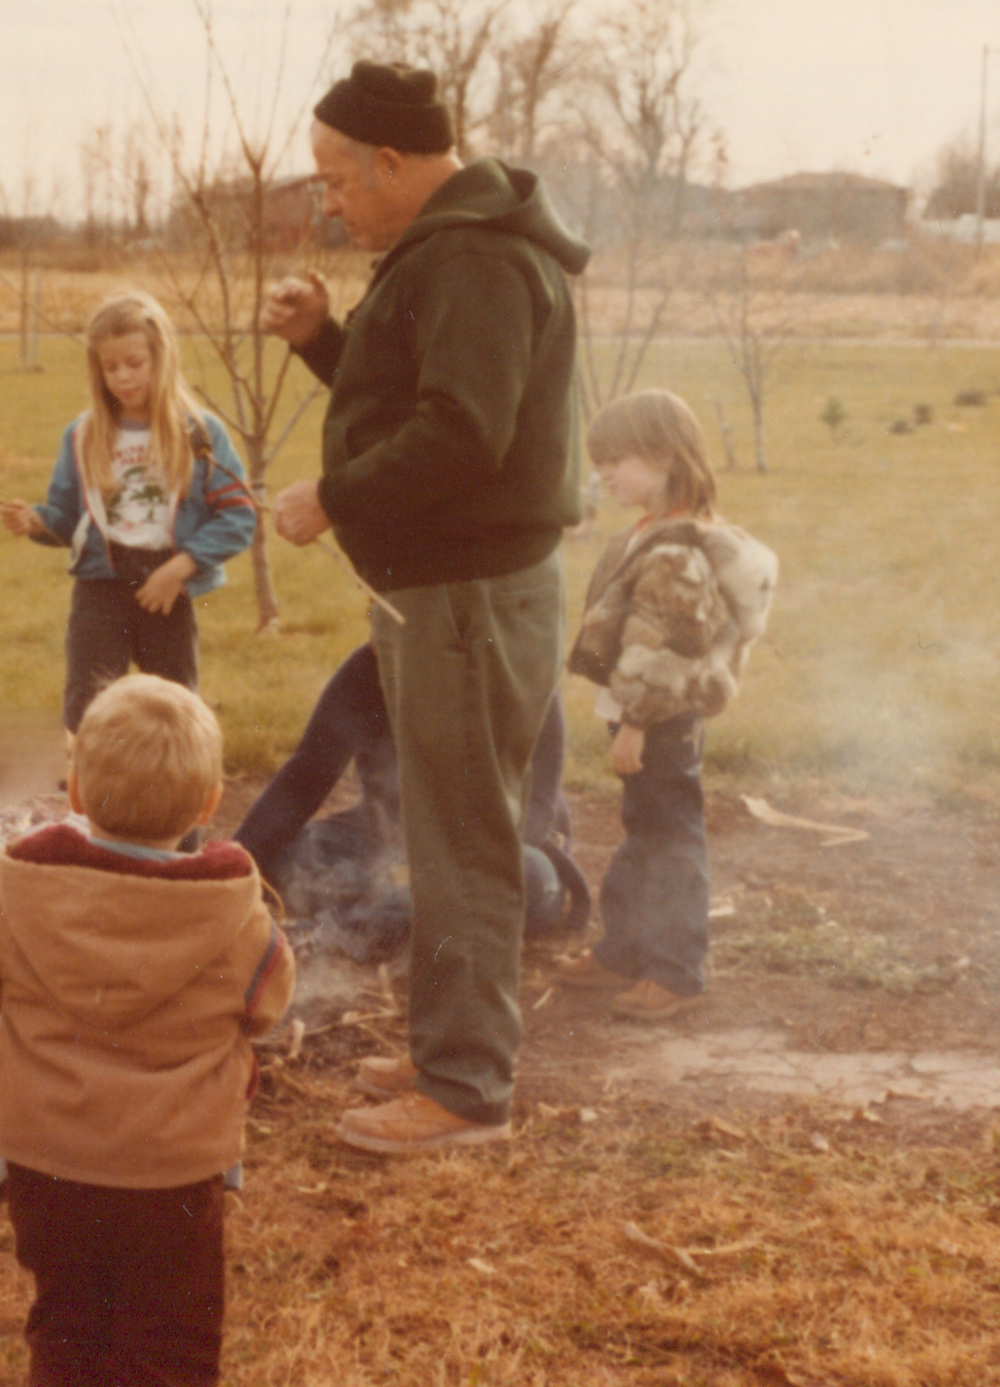 That's Grandpa! He's the coolest.  Oh and that's me in the fake rabbit fur coat and Joe Dirt haircut.  (thanks for that, mom)